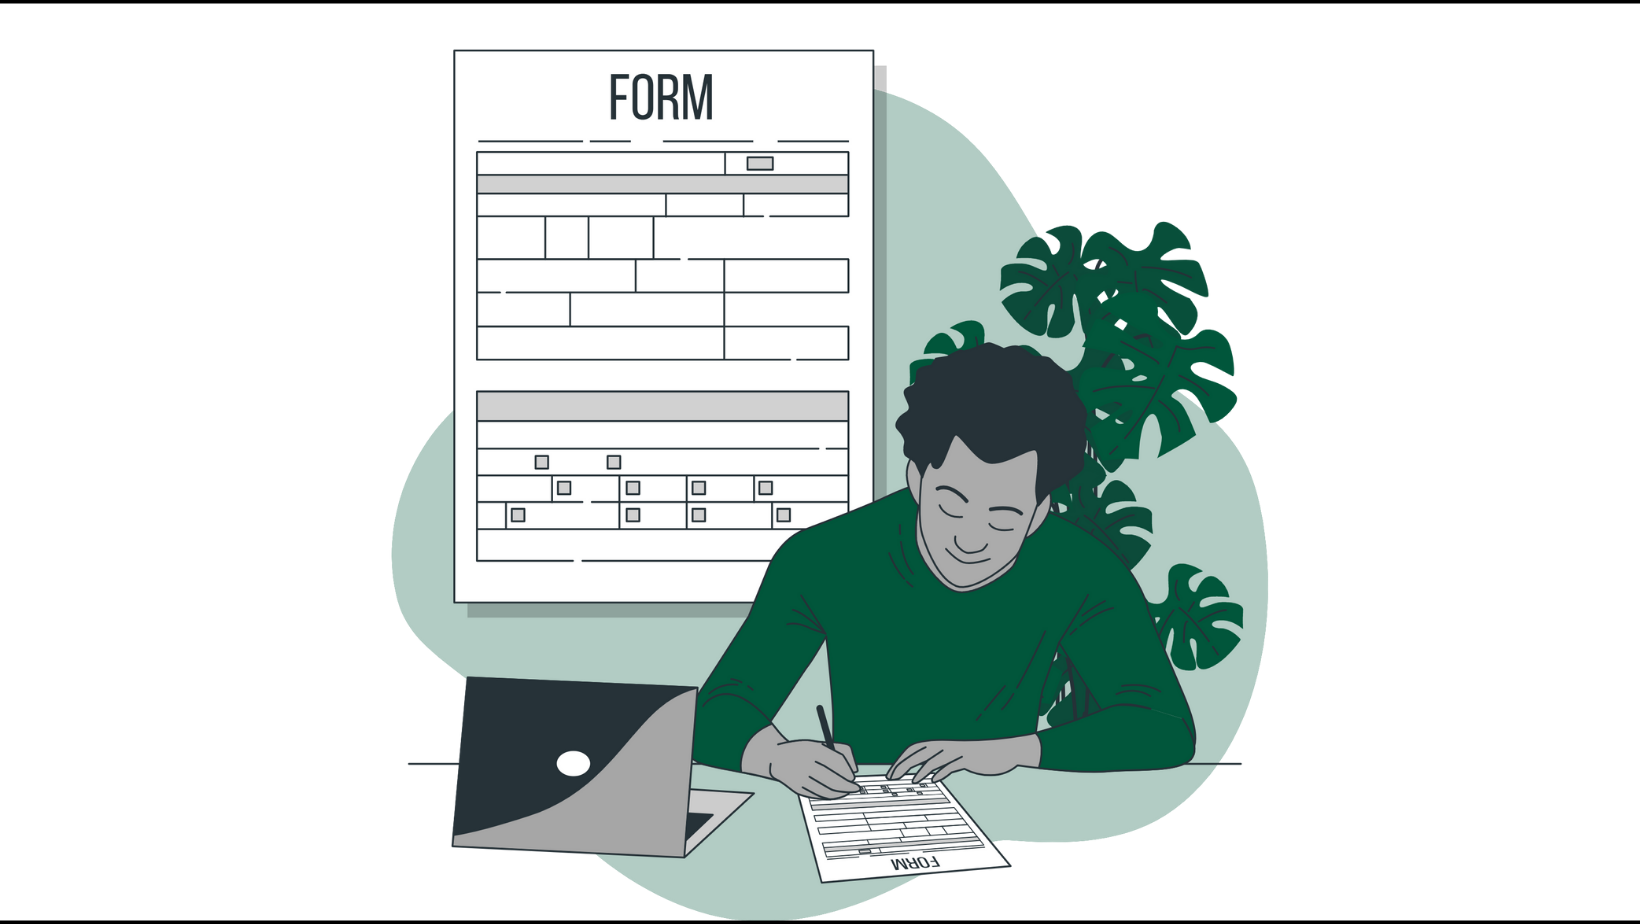 Manage permissions with form builder and other Orah features